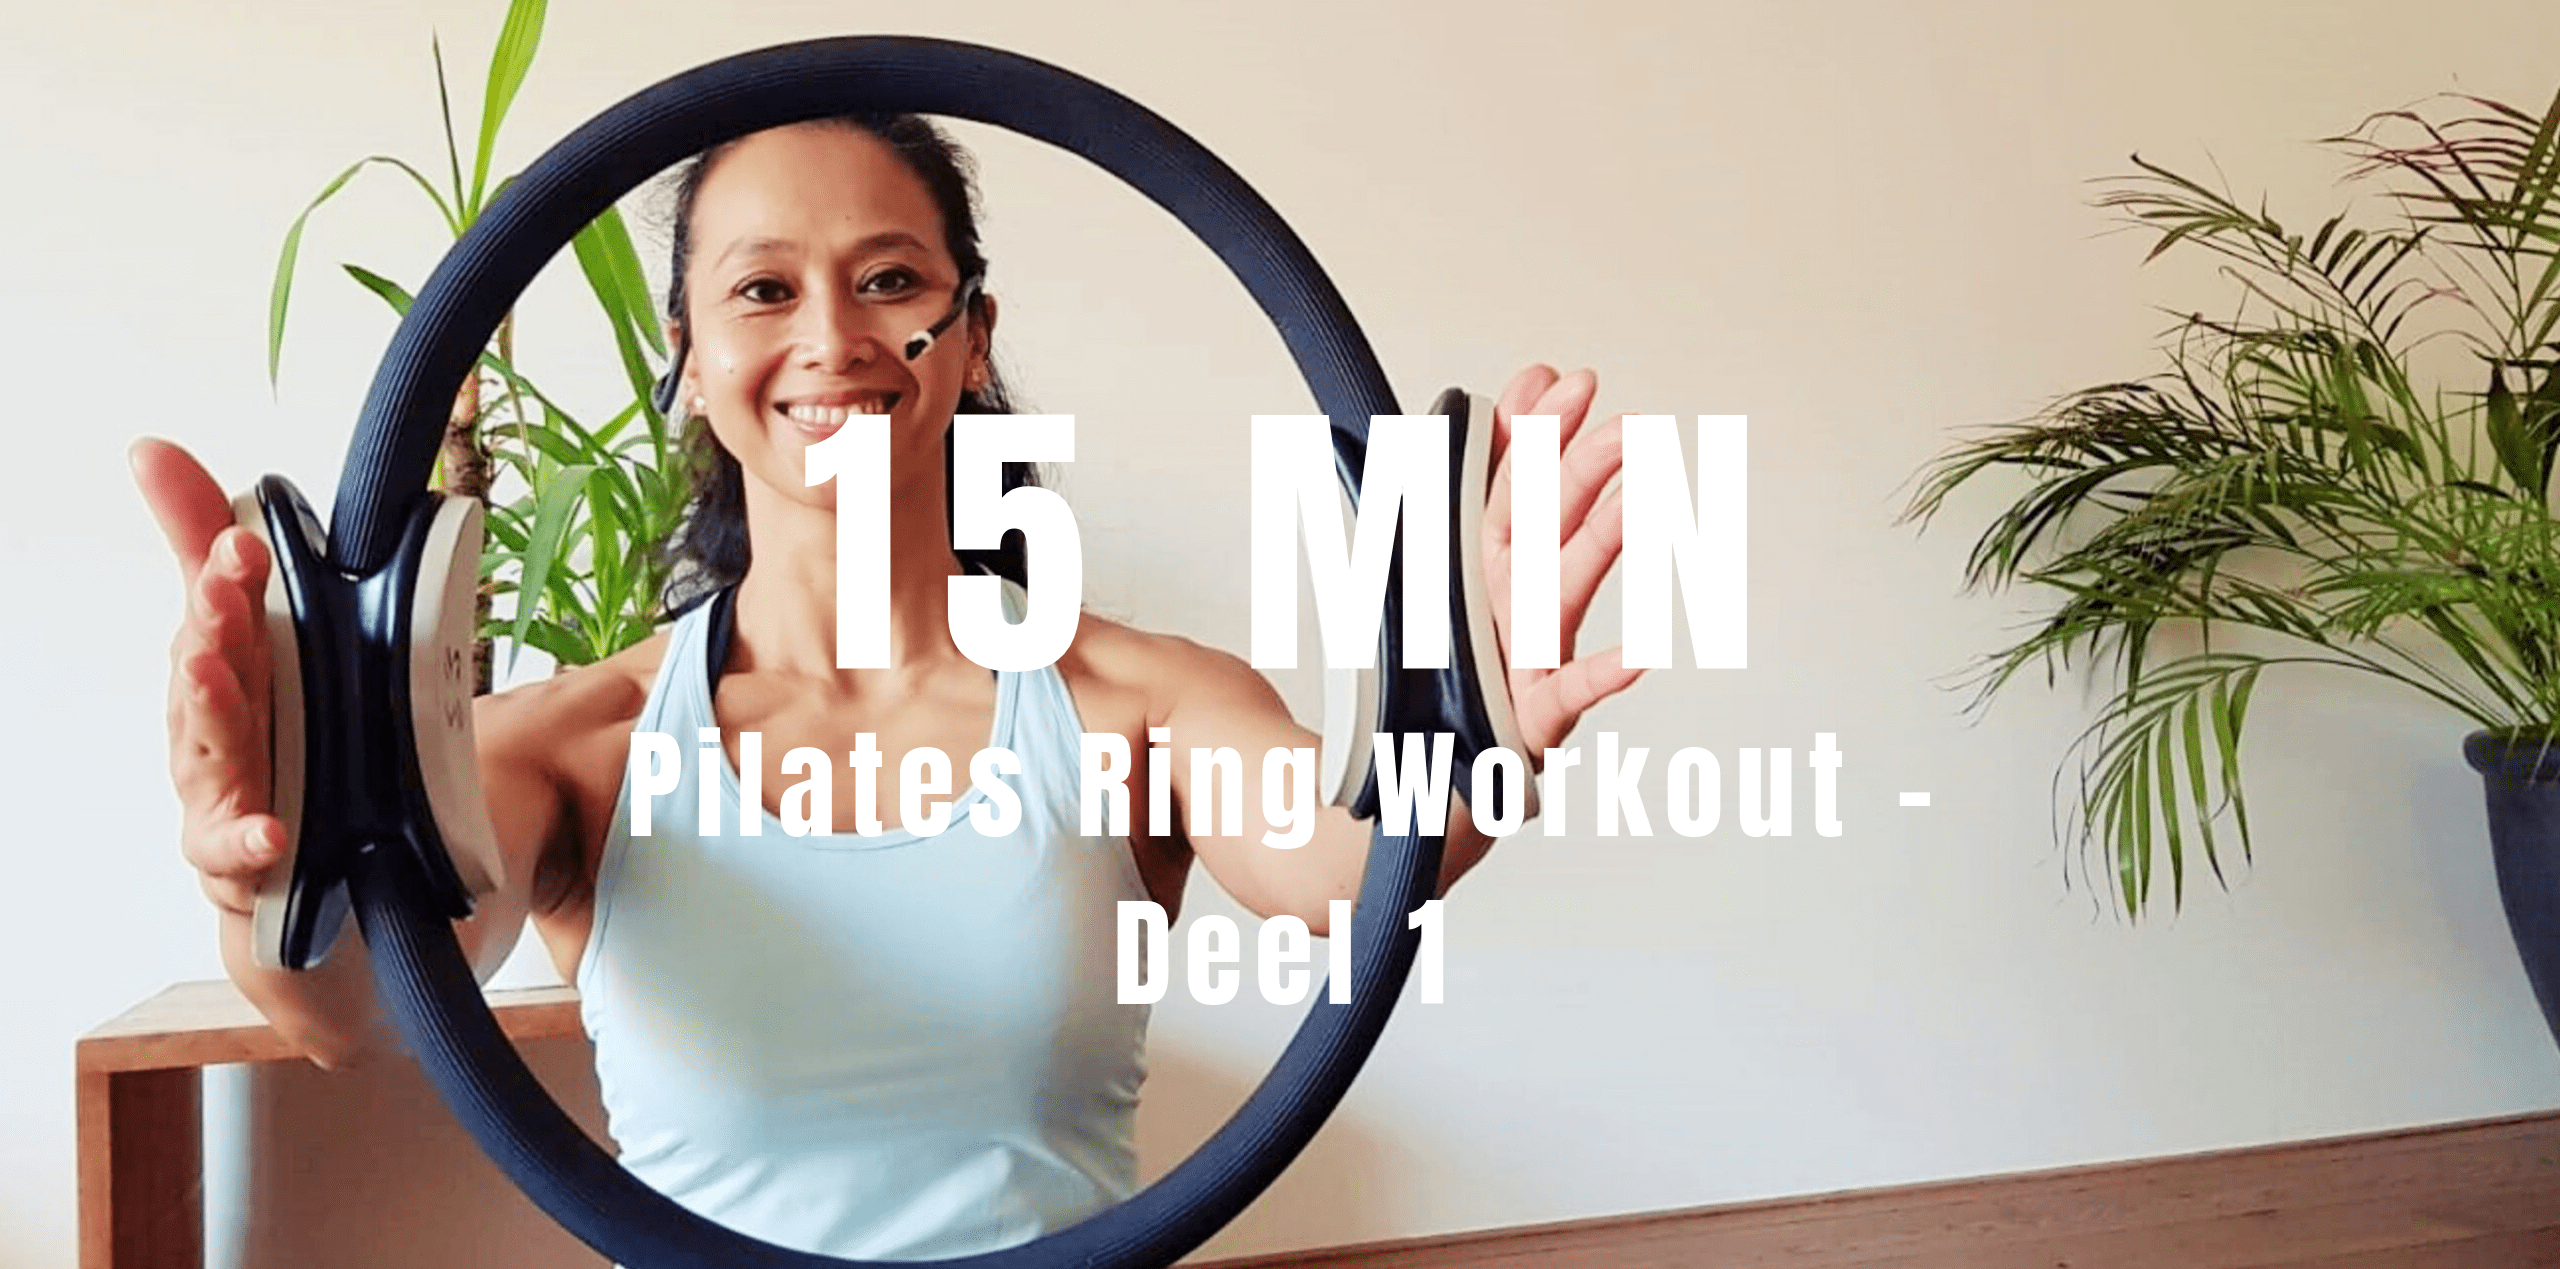 Pilates ring workout deel 1 | strongbody.nl